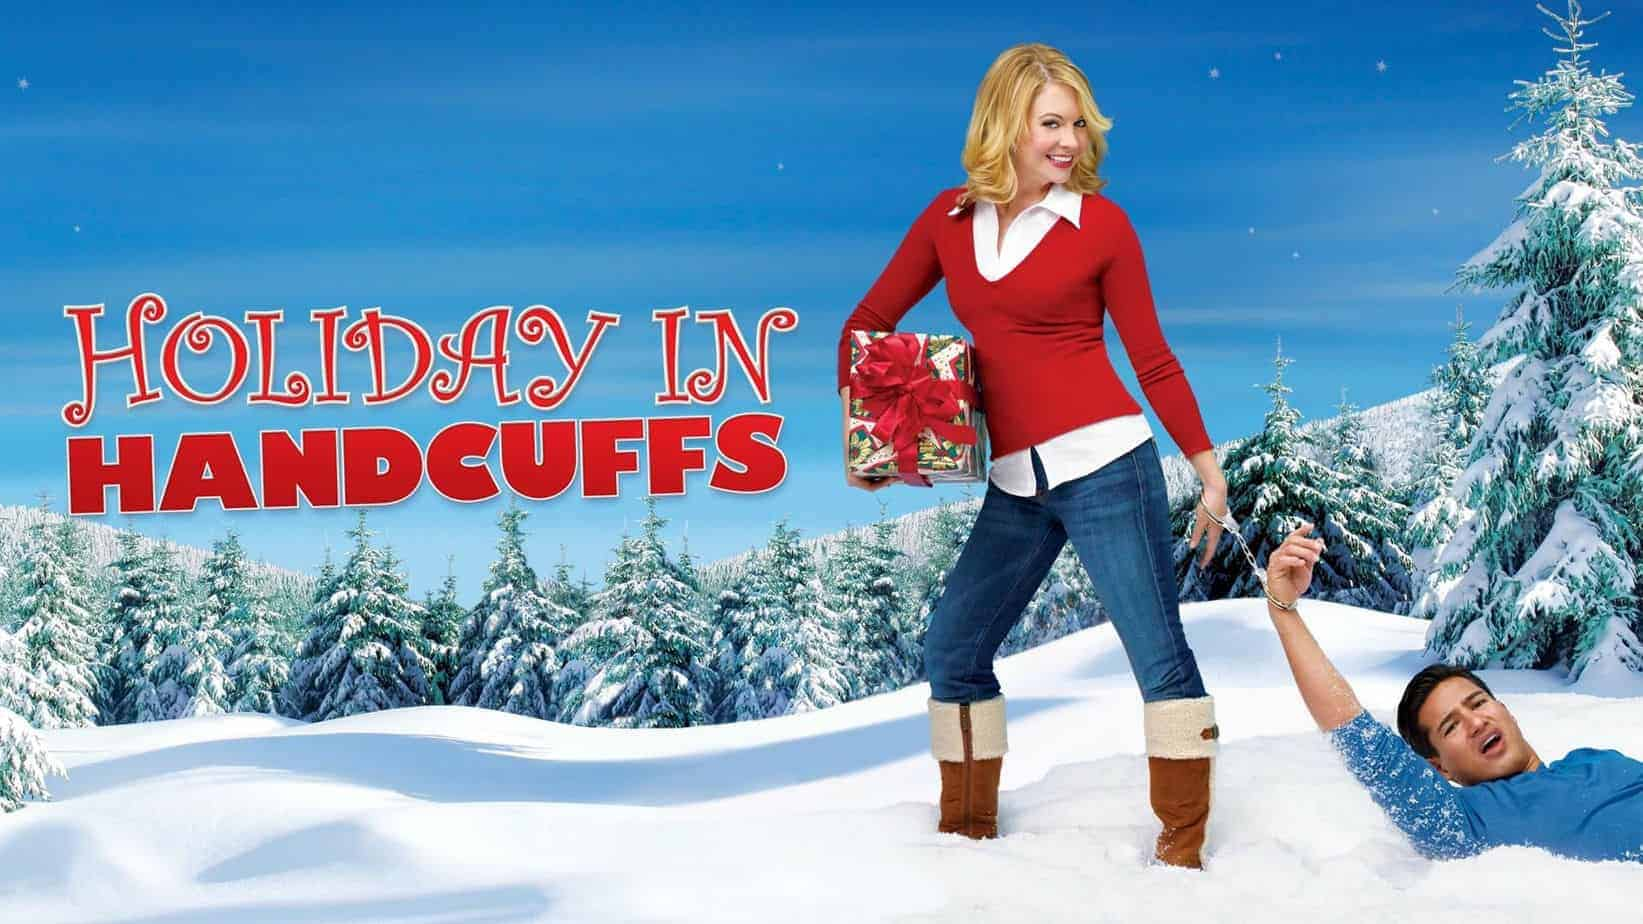 christmas movies on netflix, hulu and amazon holiday in handcuffs